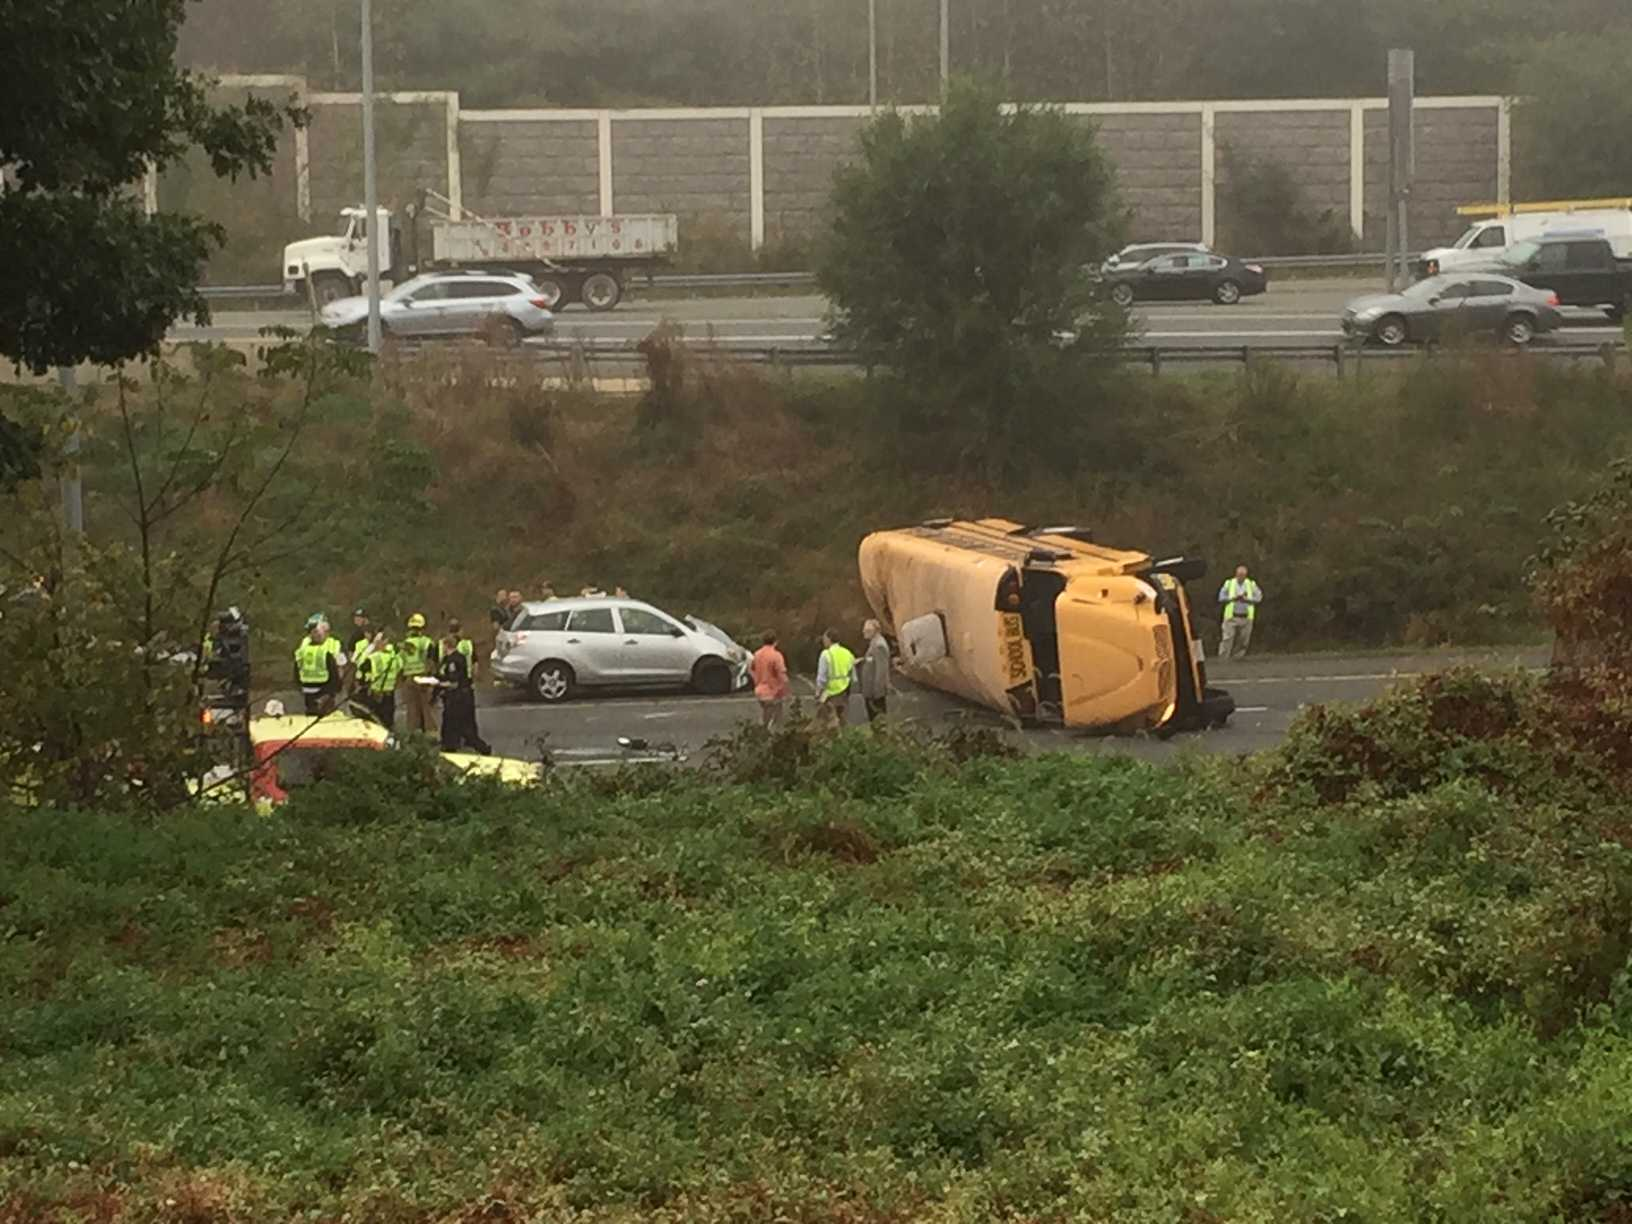 5 injured after school bus overturns in Ellicott City